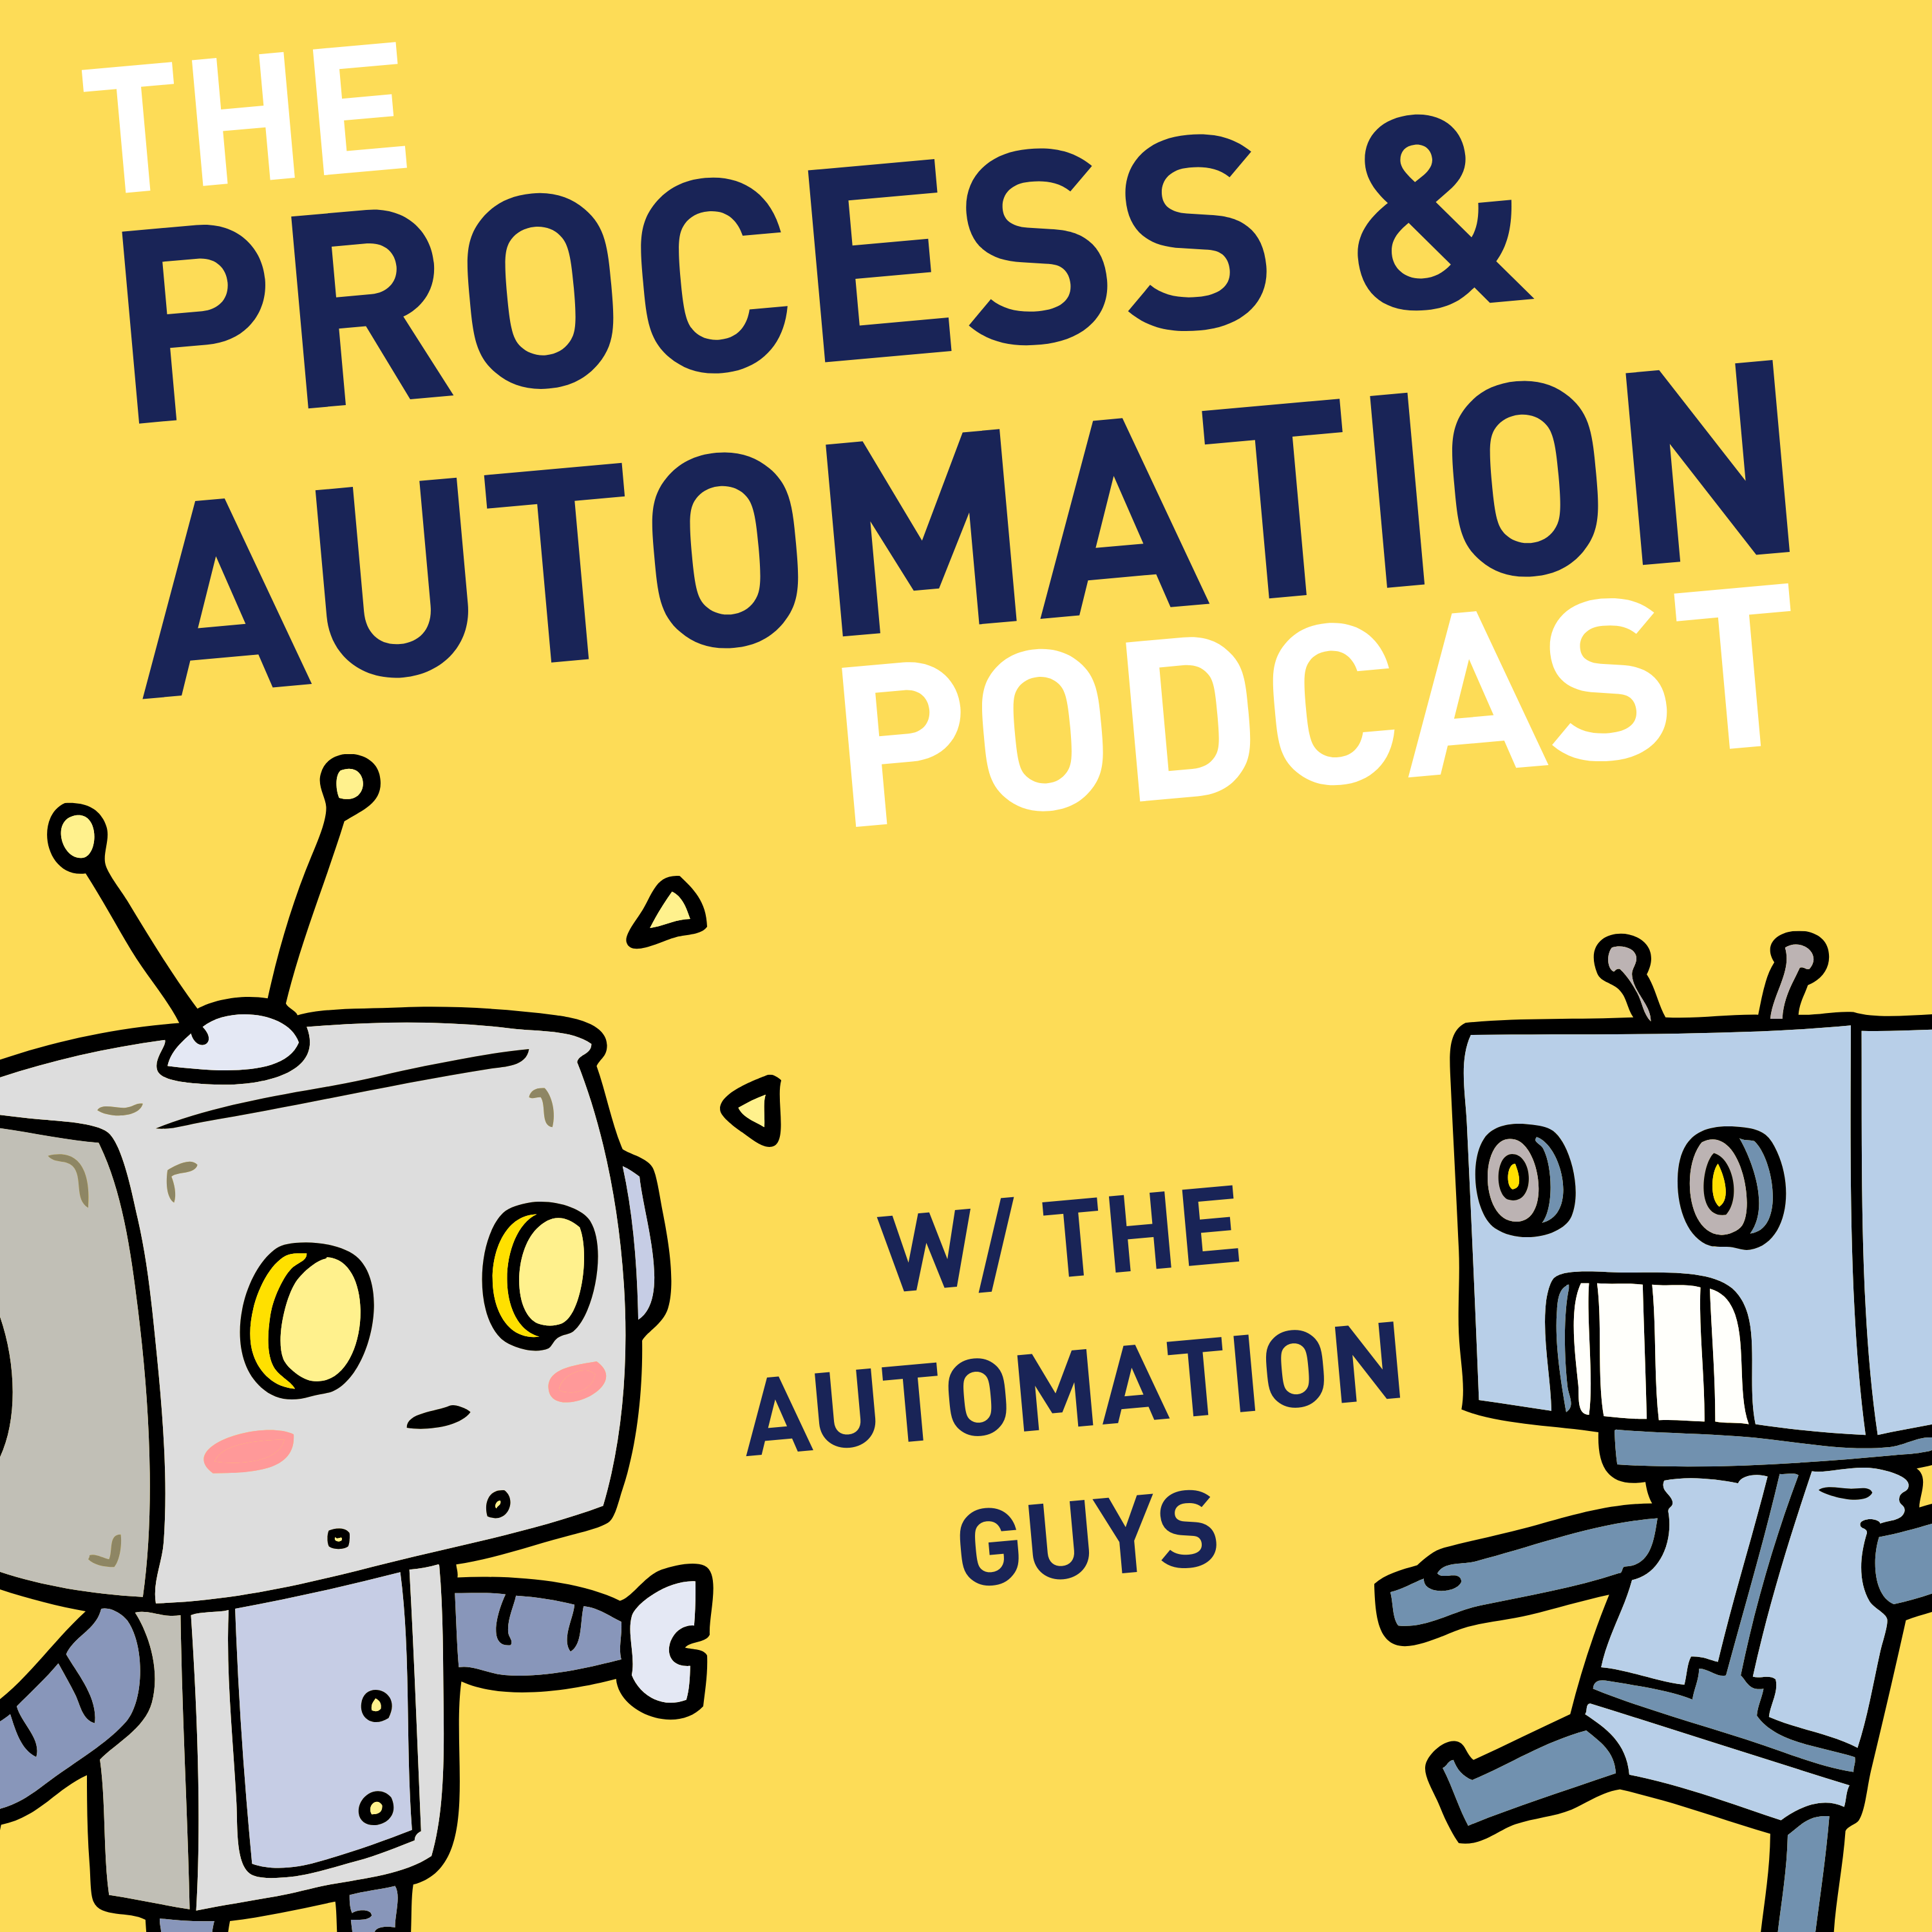 the process and automation podcast